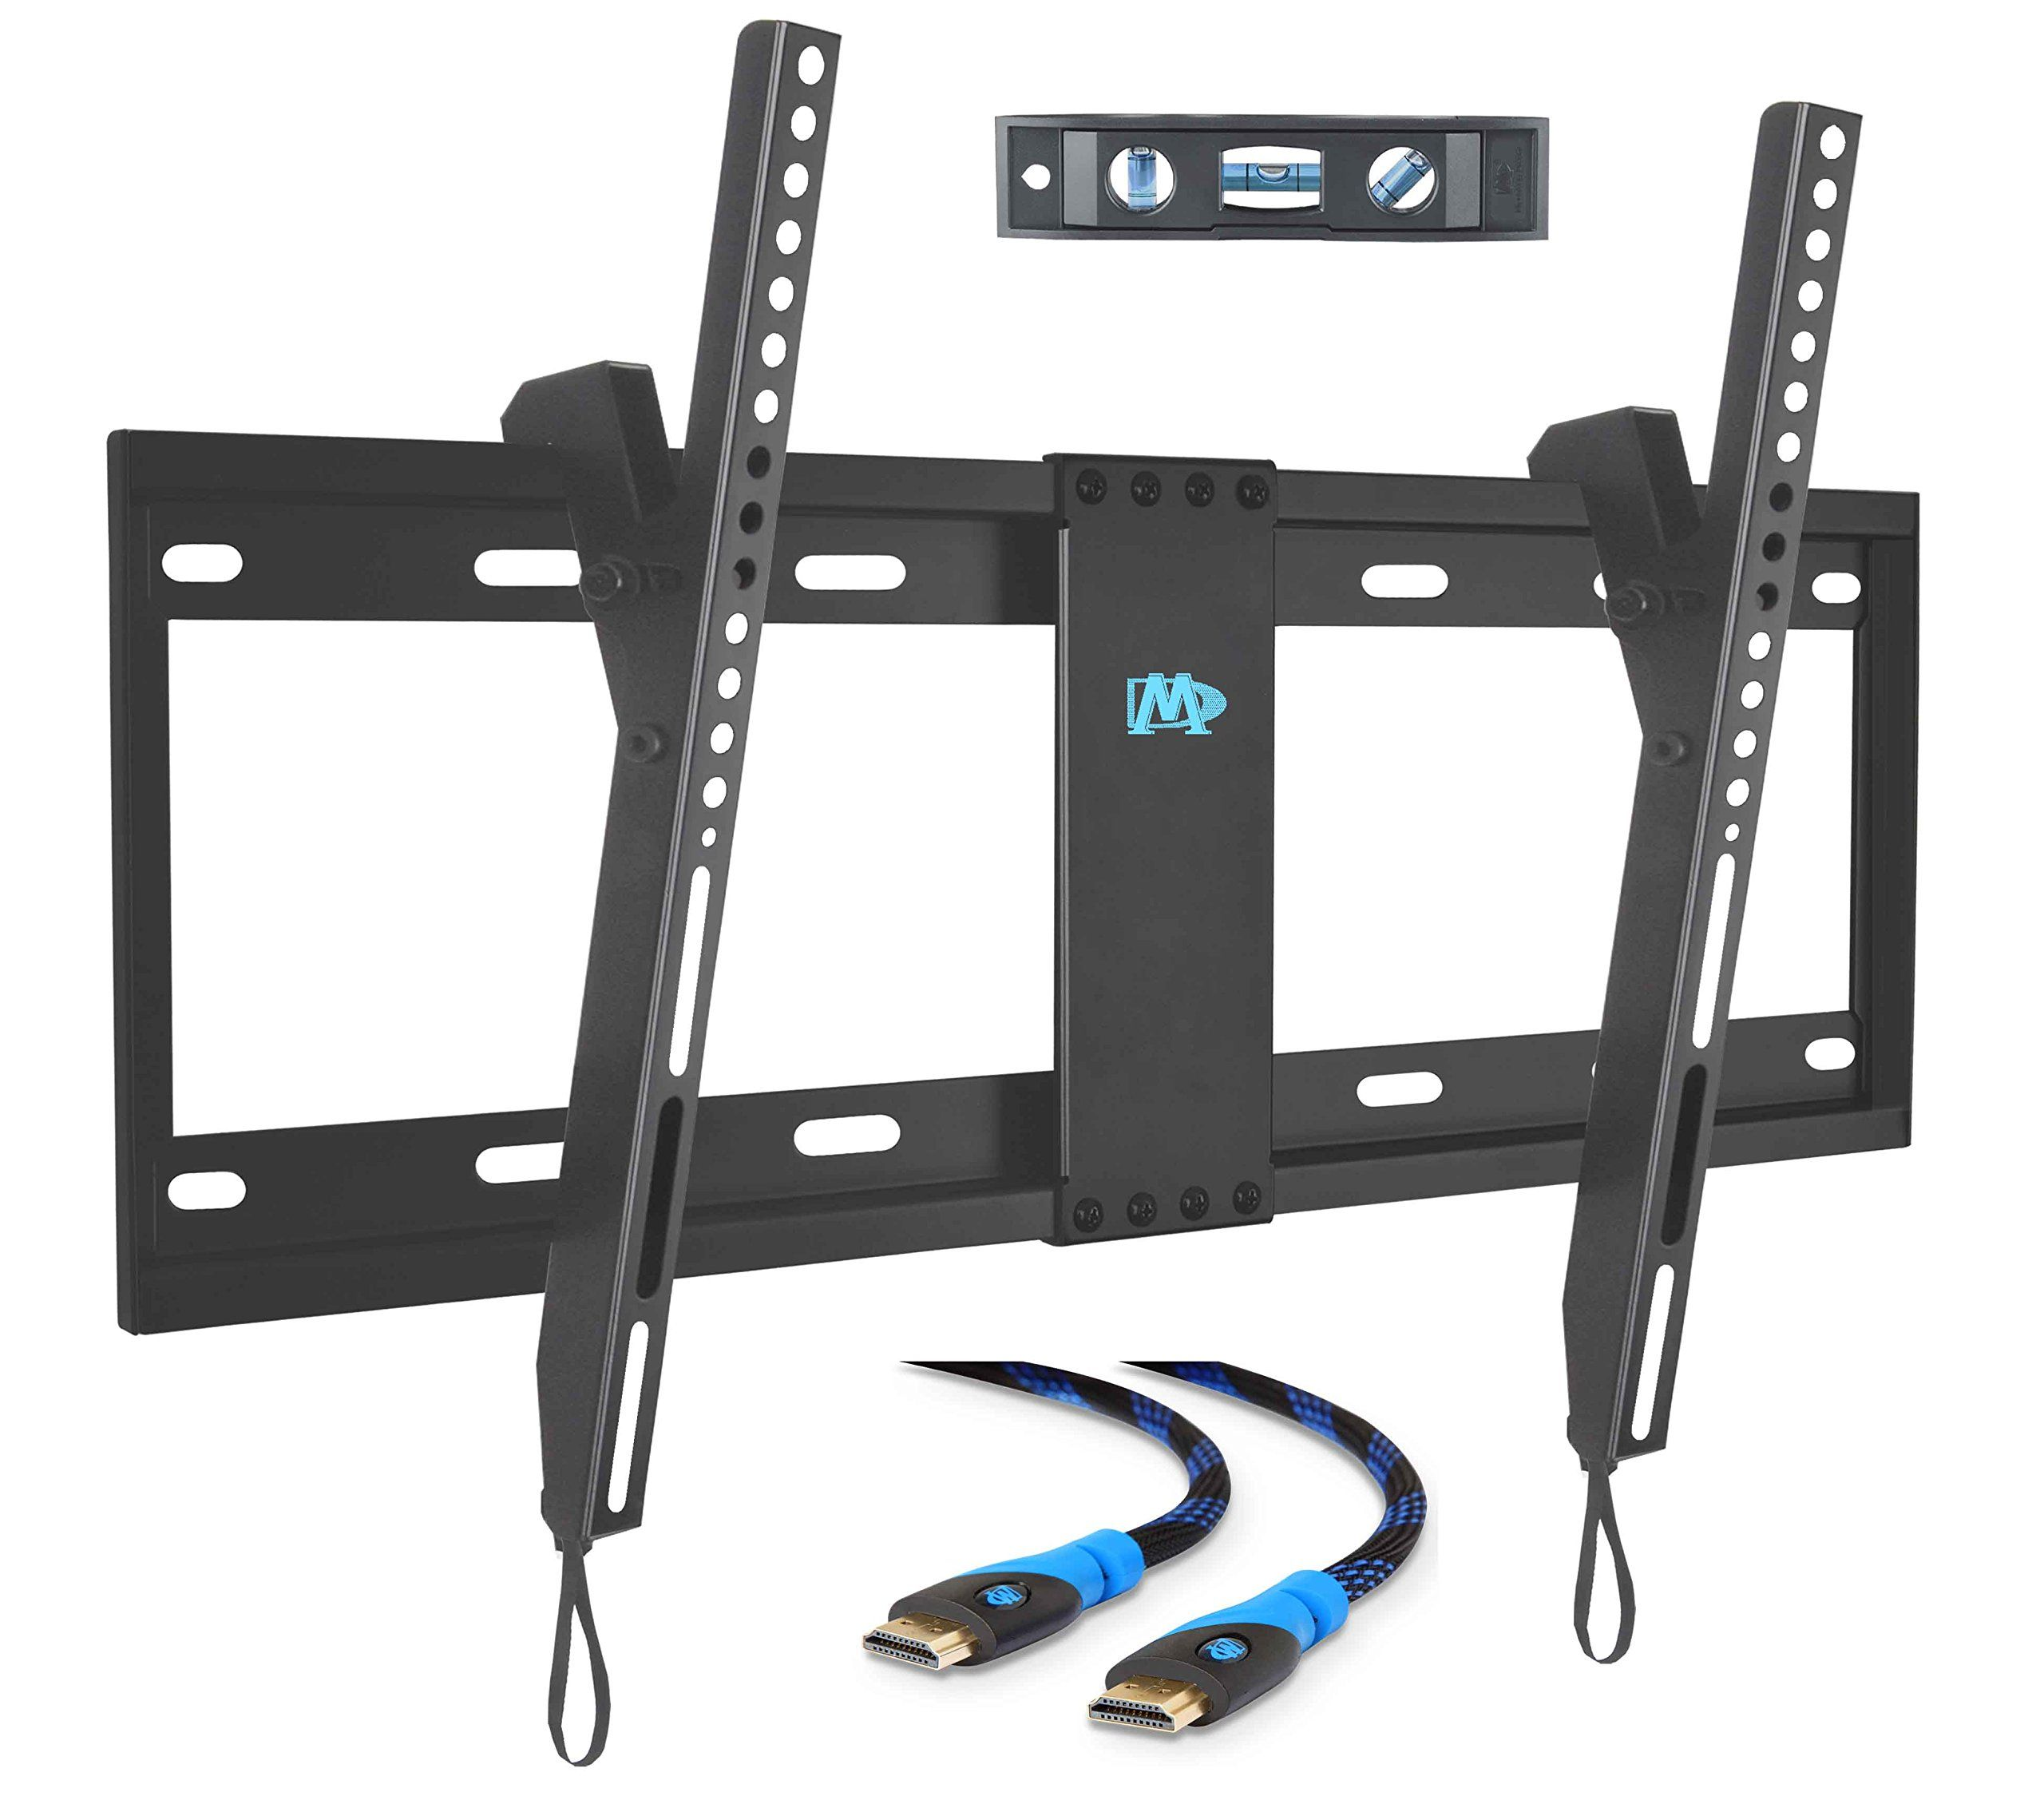 Mounting Dream Md2268 Lk Tv Wall Mount Tilting Bracket For Most 42 70 Inch Led Lcd And Plasma Tvs Up To Vesa 600 Wall Mounted Tv Tv Wall Tilting Tv Wall Mount